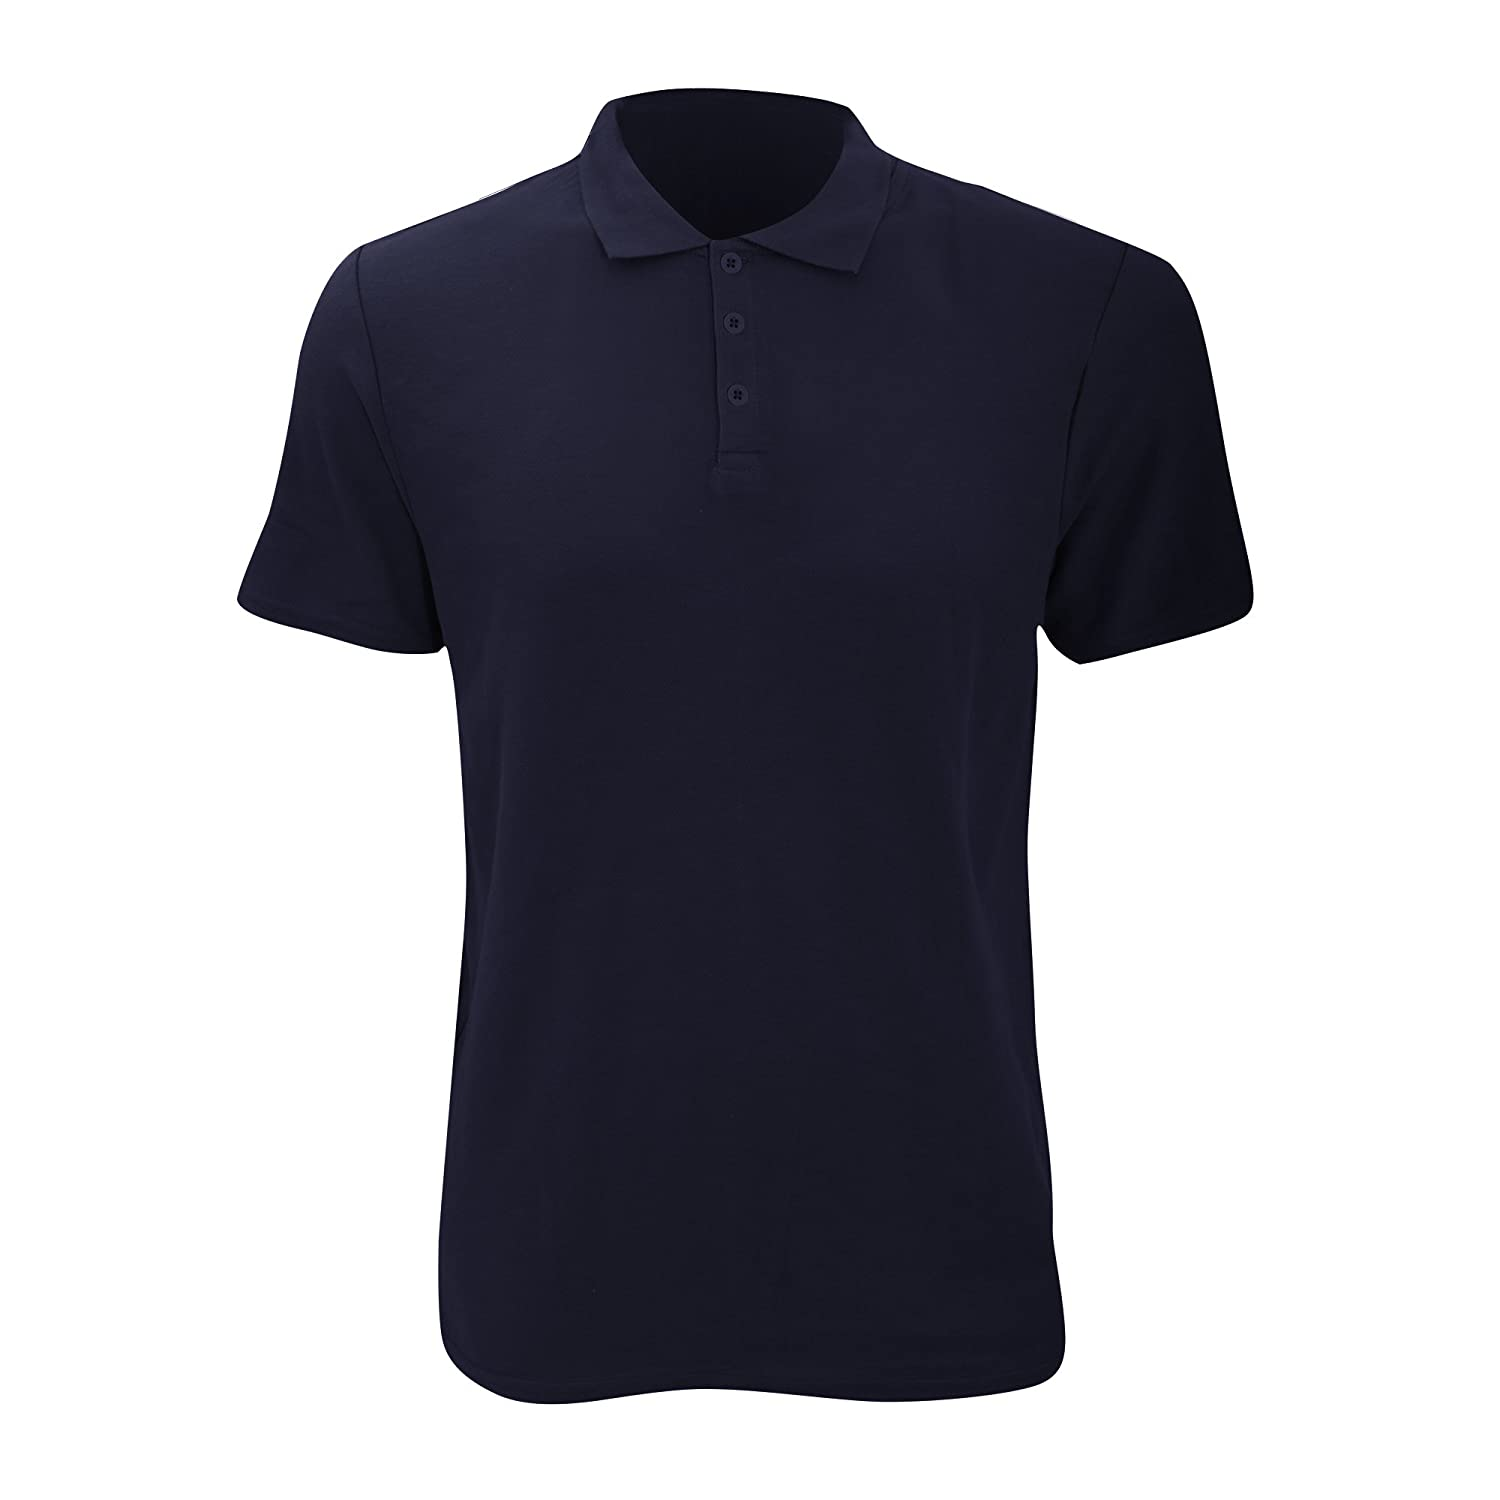 210 GSM Anvil Mens Fashion Double Pique Plain Polo Shirt